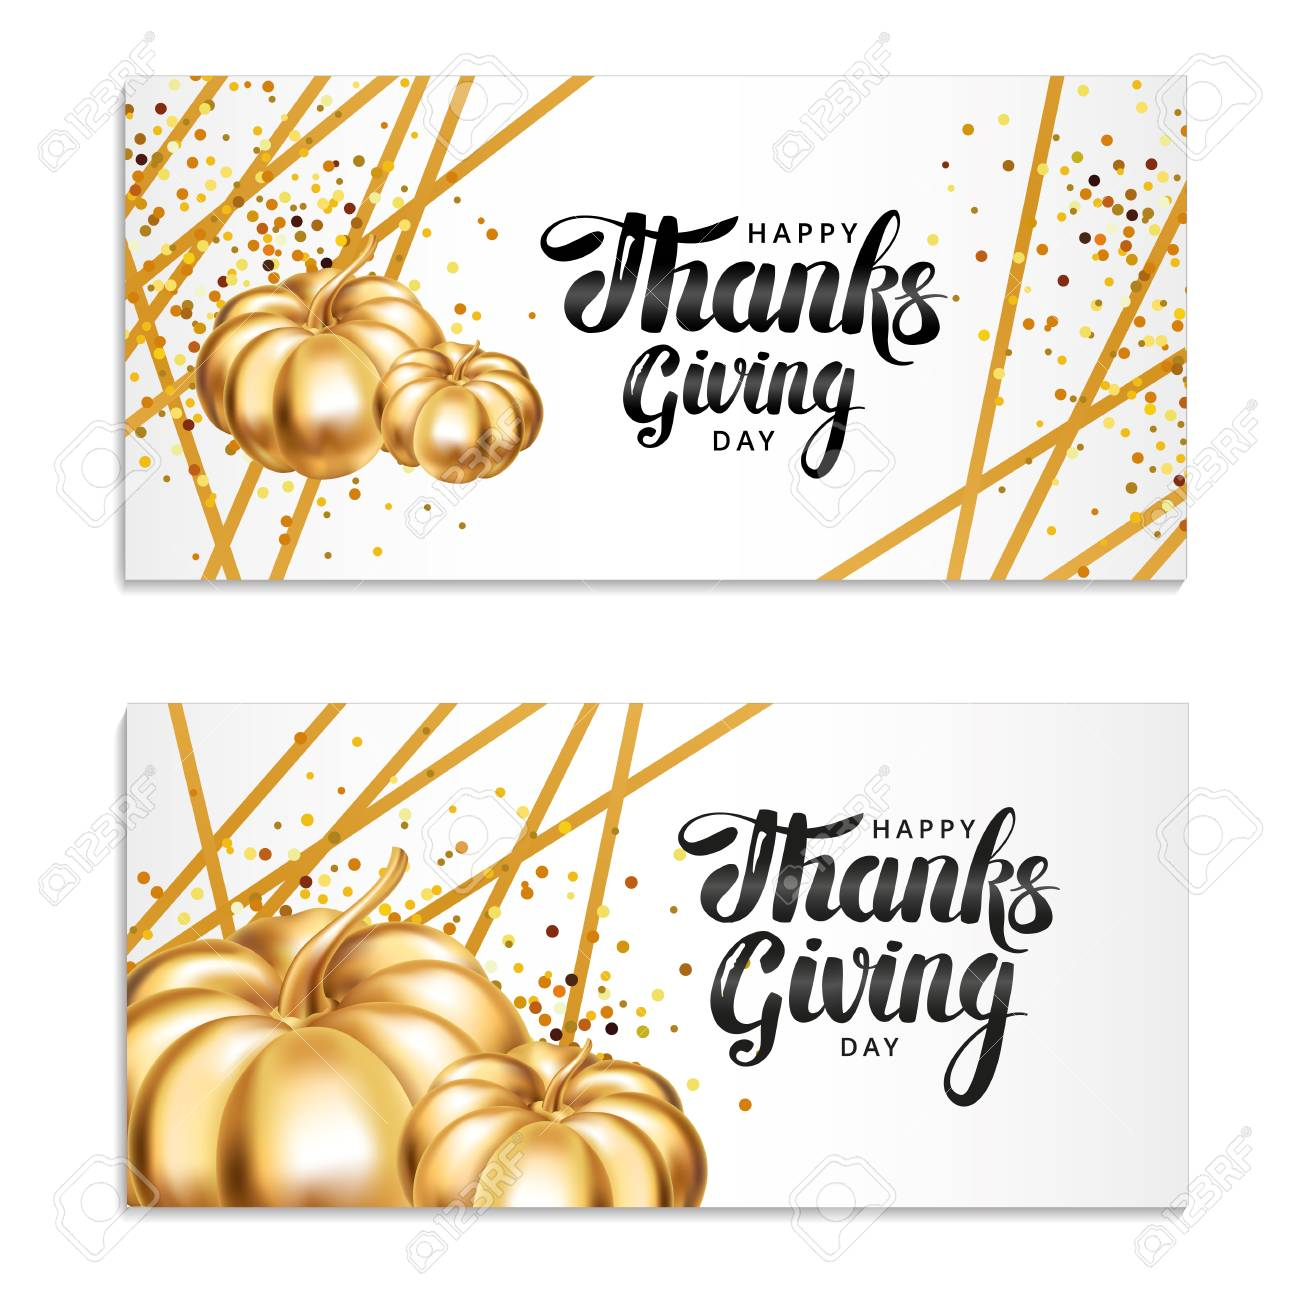 Happy Thanksgiving Day Greeting Card Template Lettering Gold